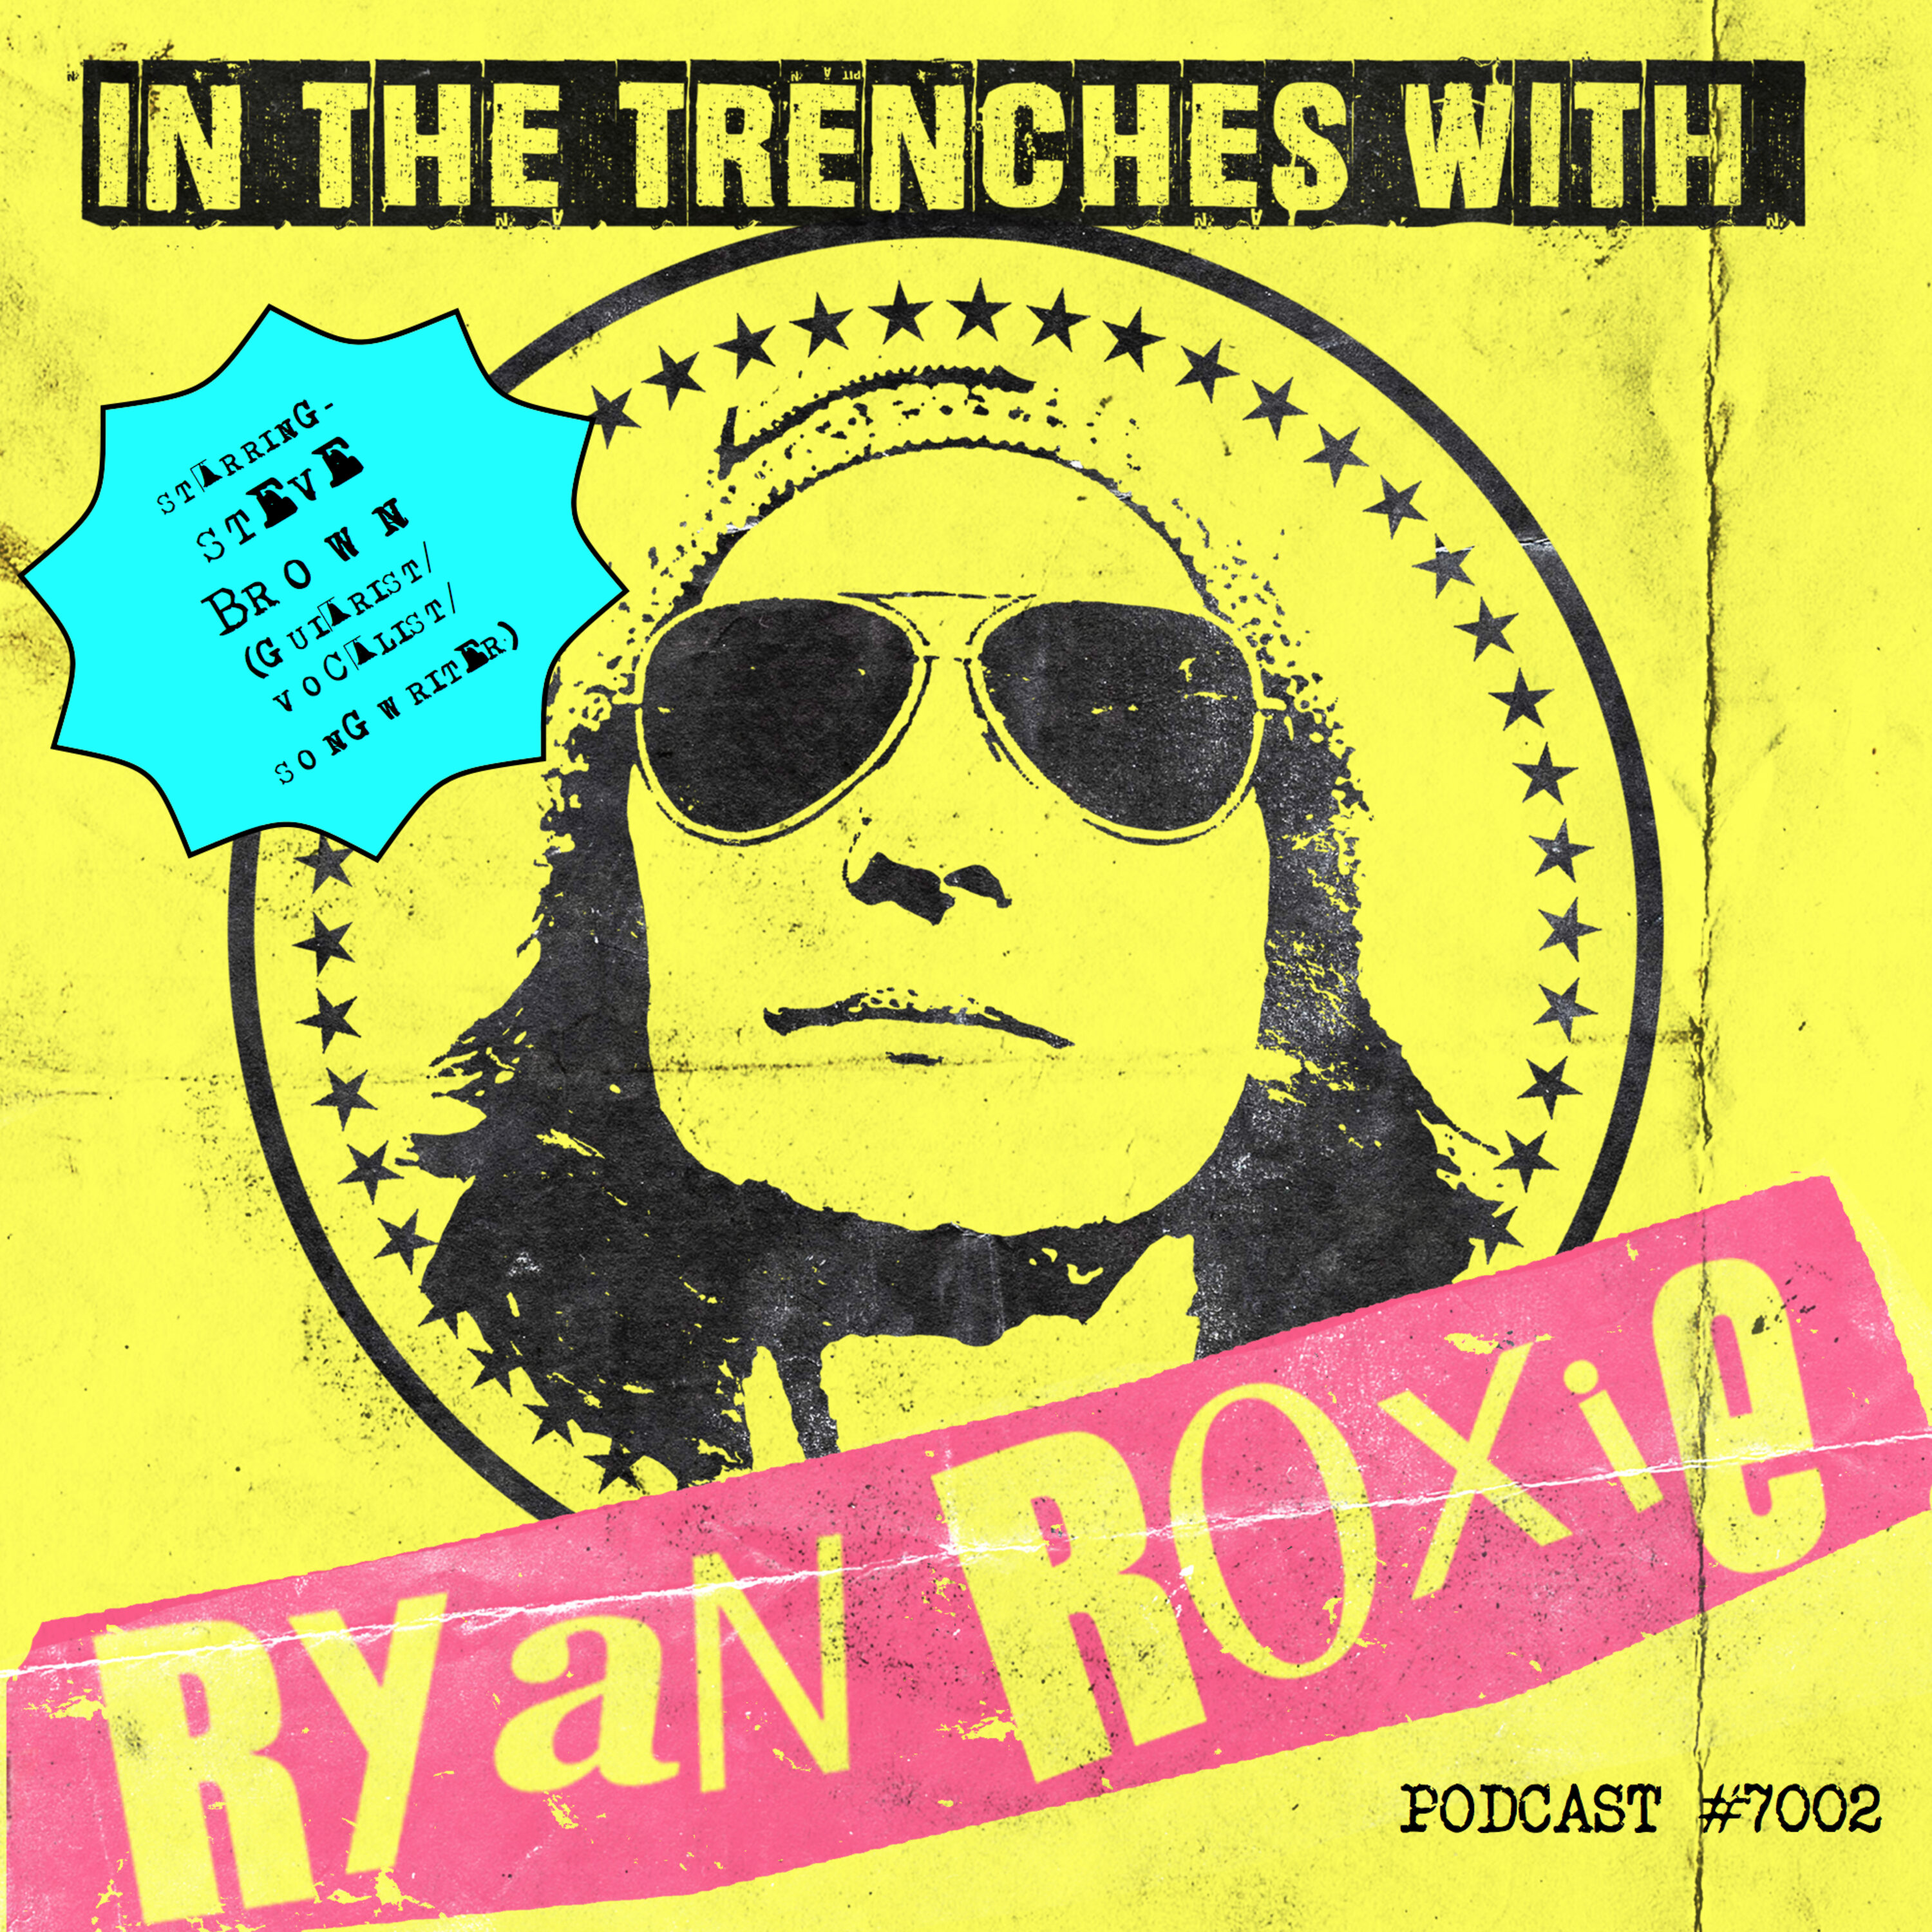 In The Trenches with Ryan Roxie Podcast -  Episode #7002 - Steve Brown (Trixter) presented by Rock Talk With Mitch Lafon